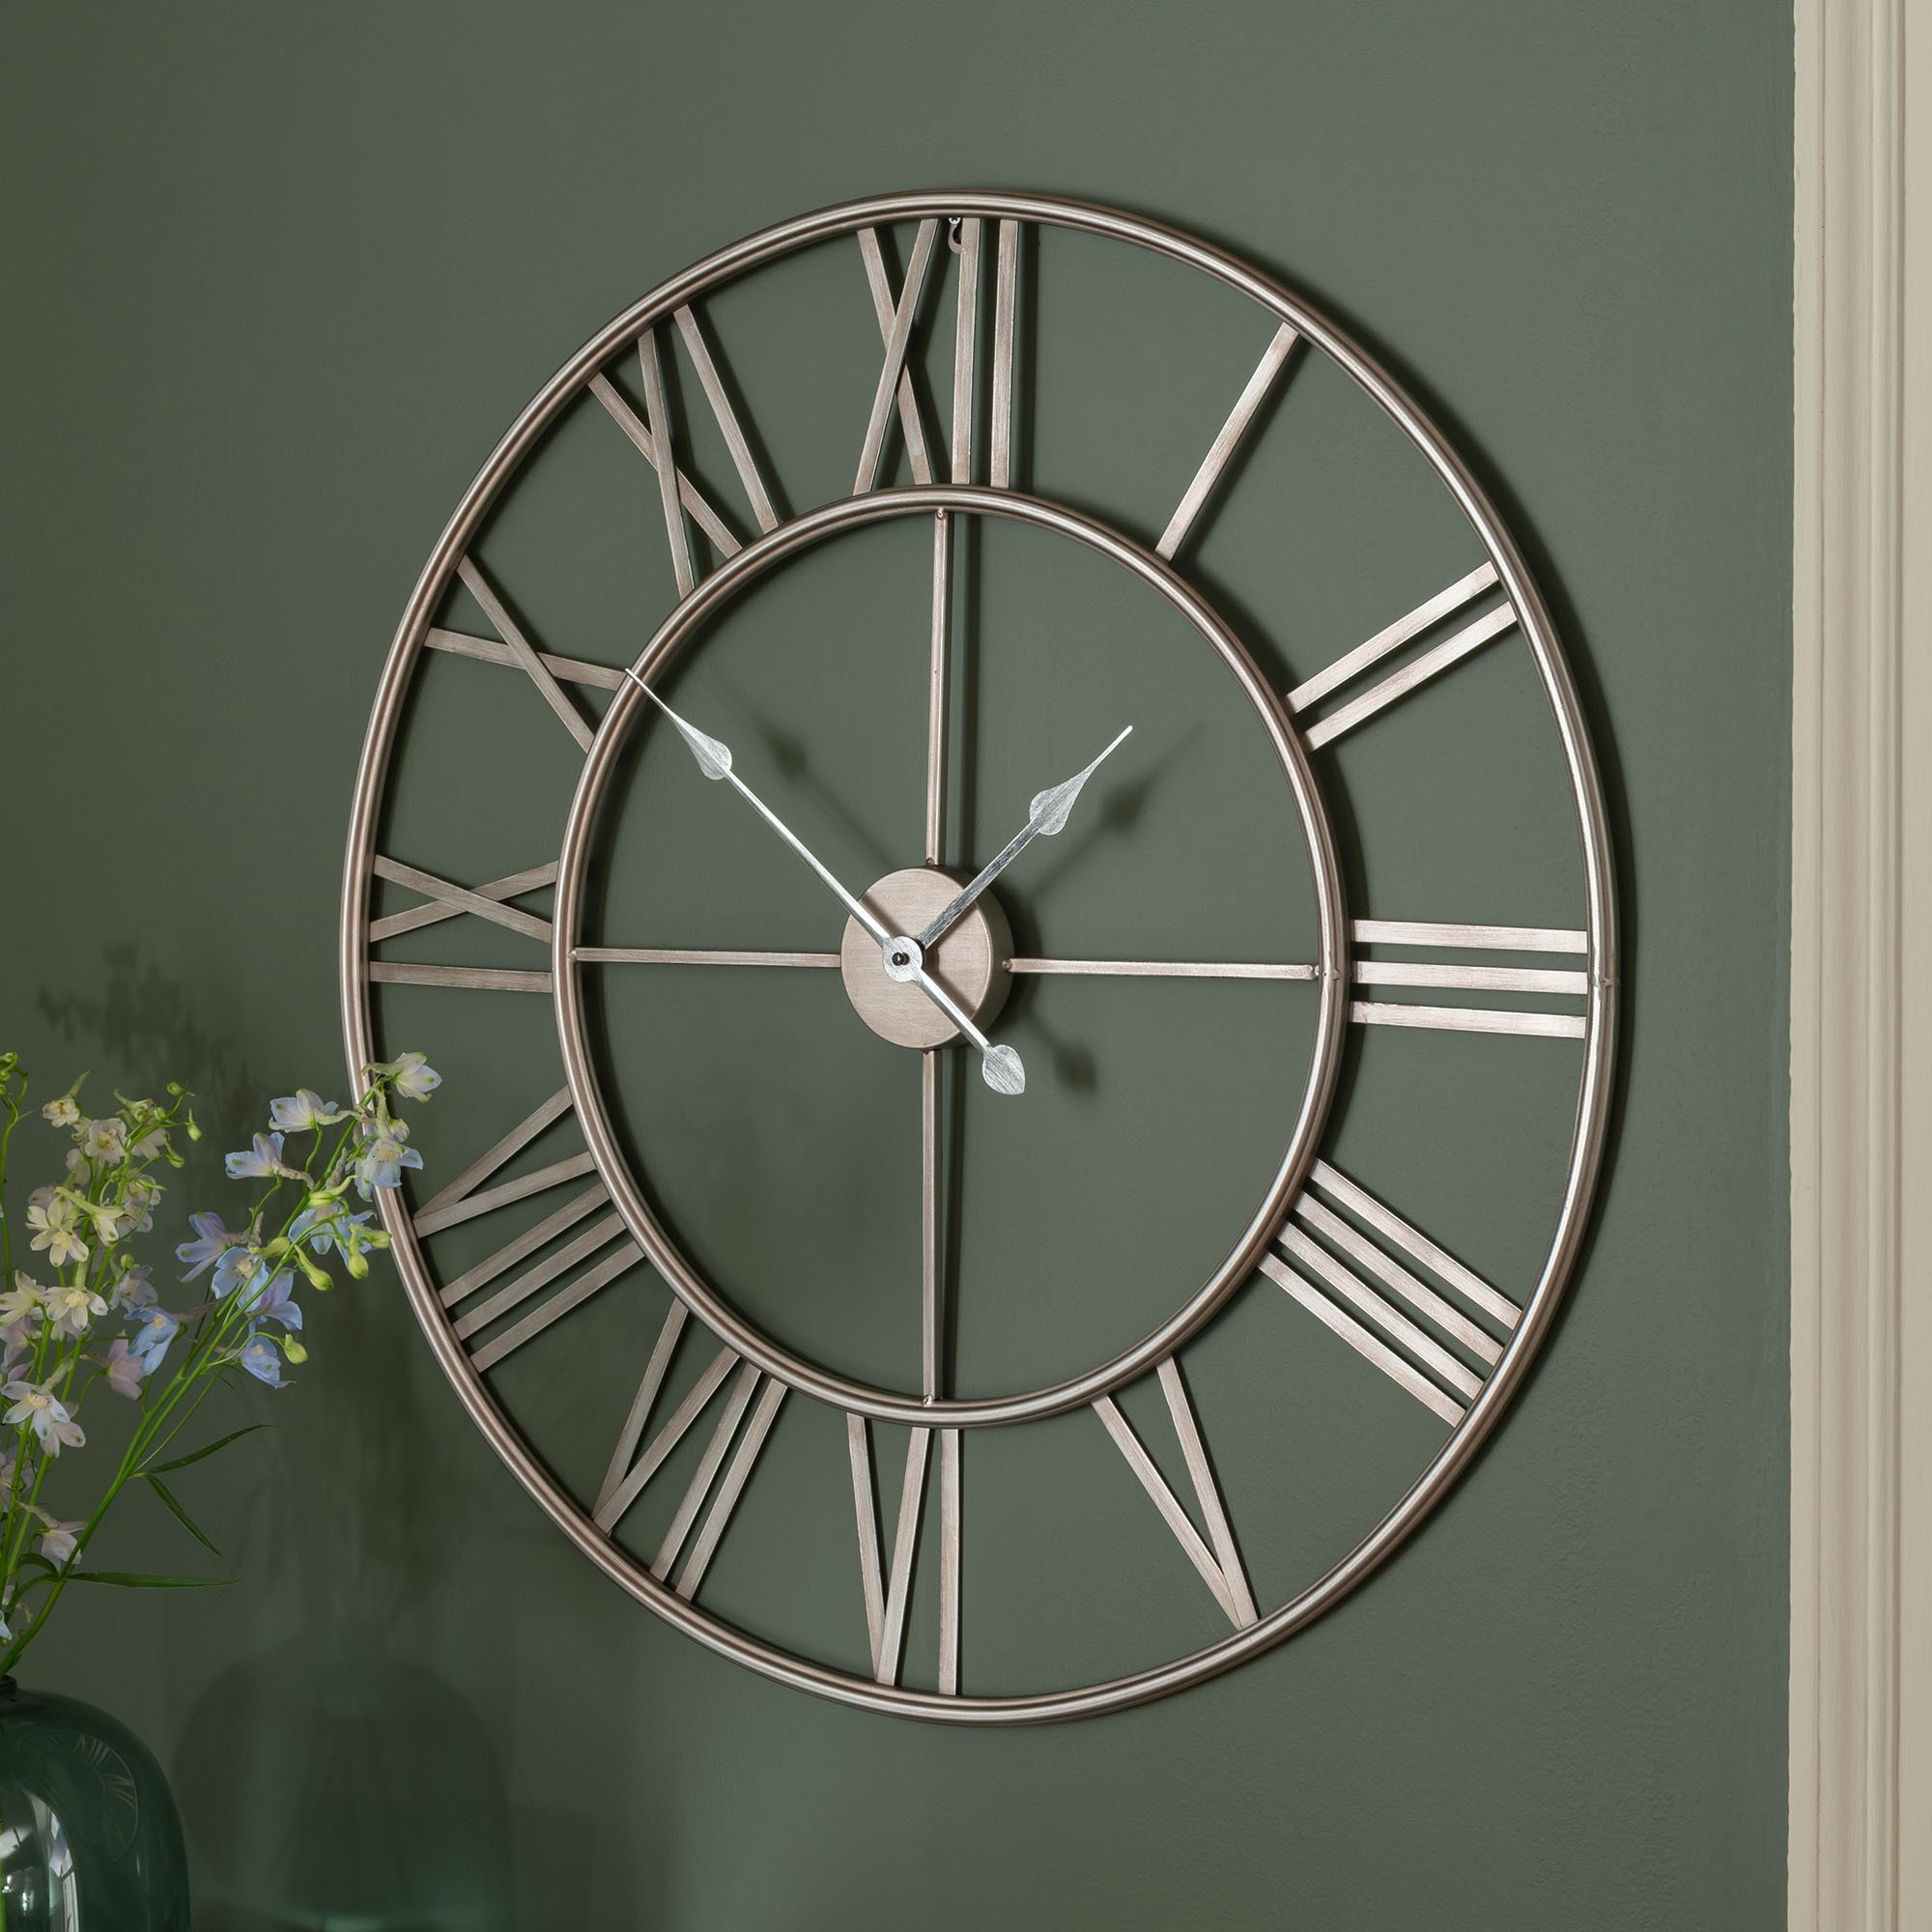 Silver Metal Frame Round Clock Clock Homesdirect365